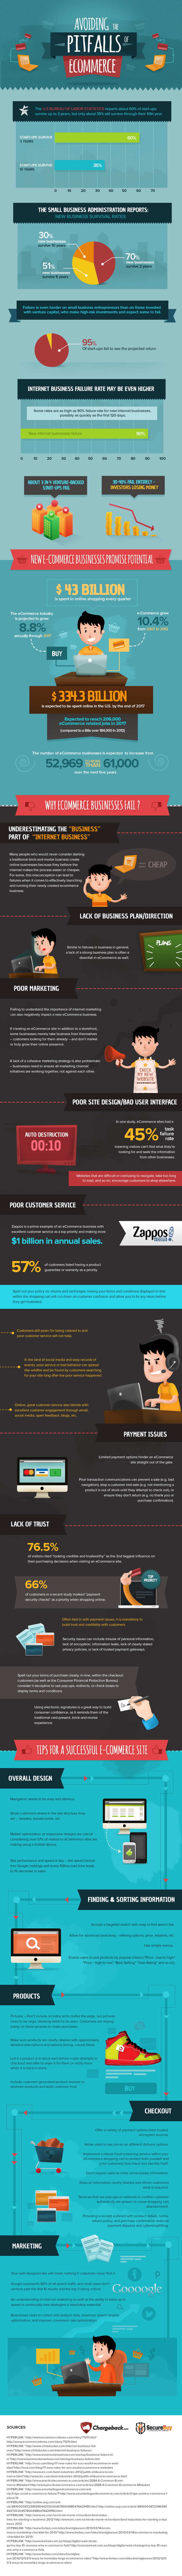 avoiding-the-pitfalls-of-ecommerce-infographic